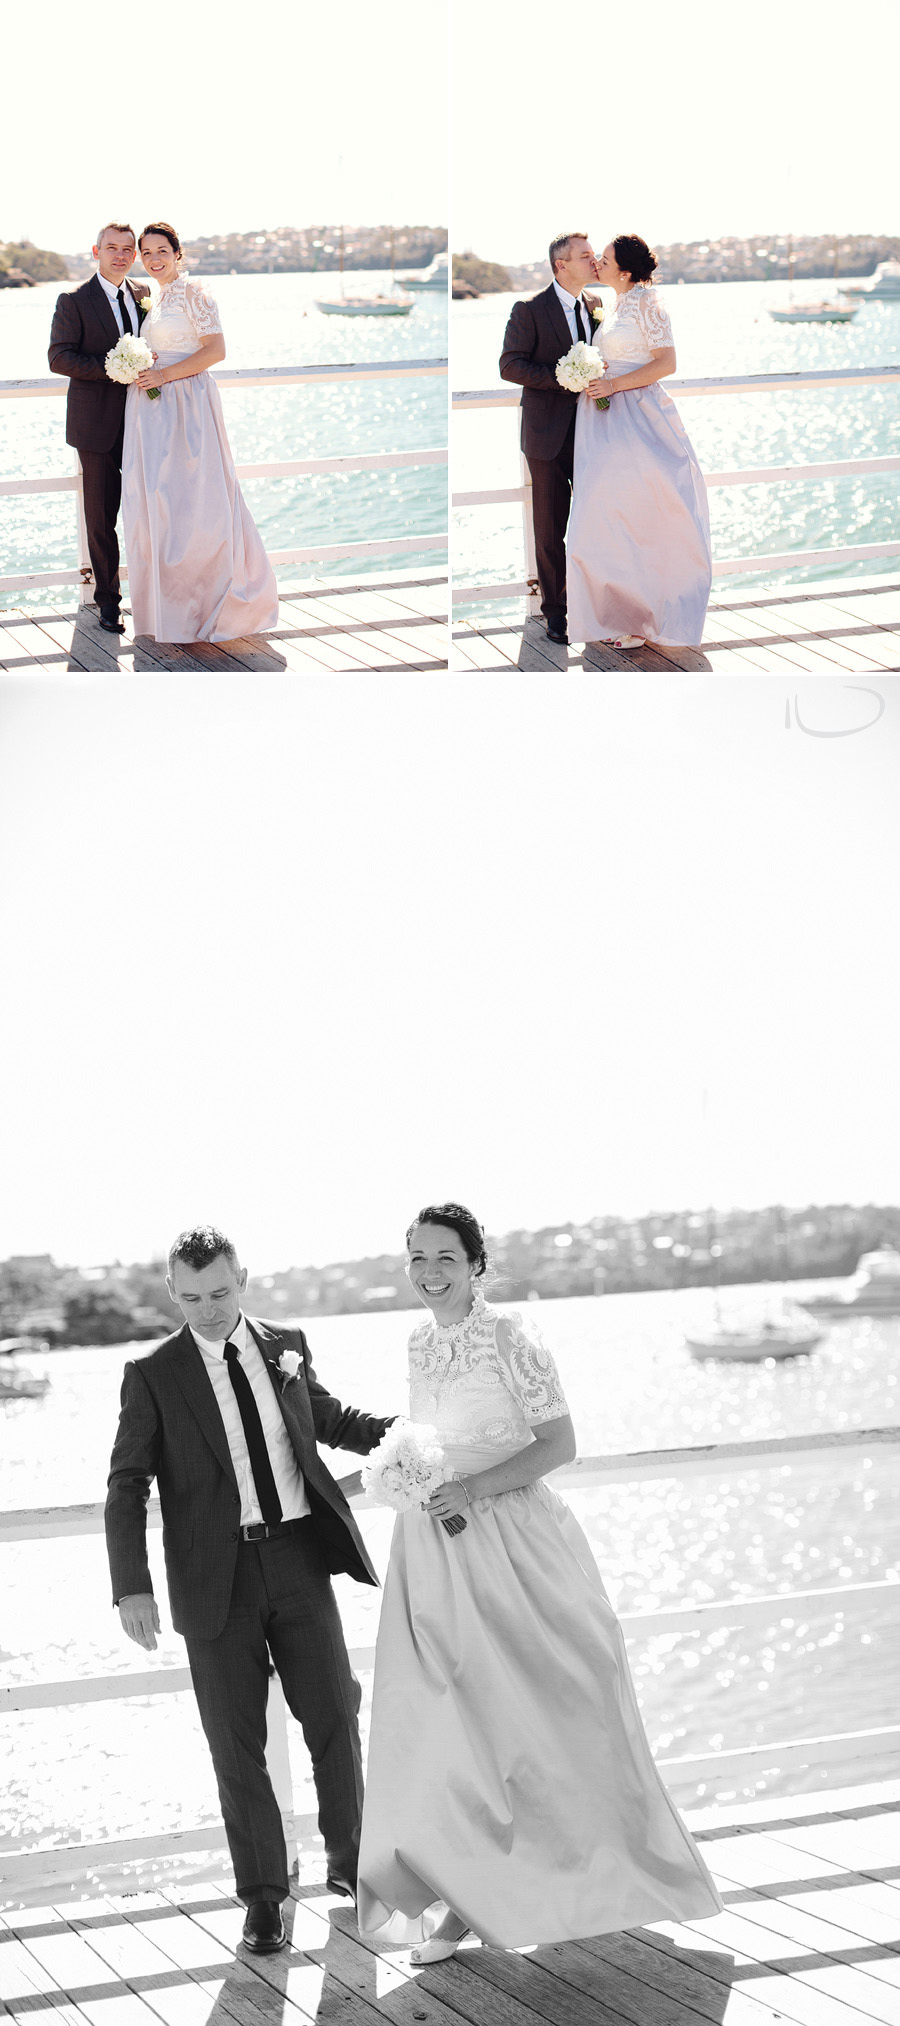 Balmoral Wedding Photography: Waterfront wedding